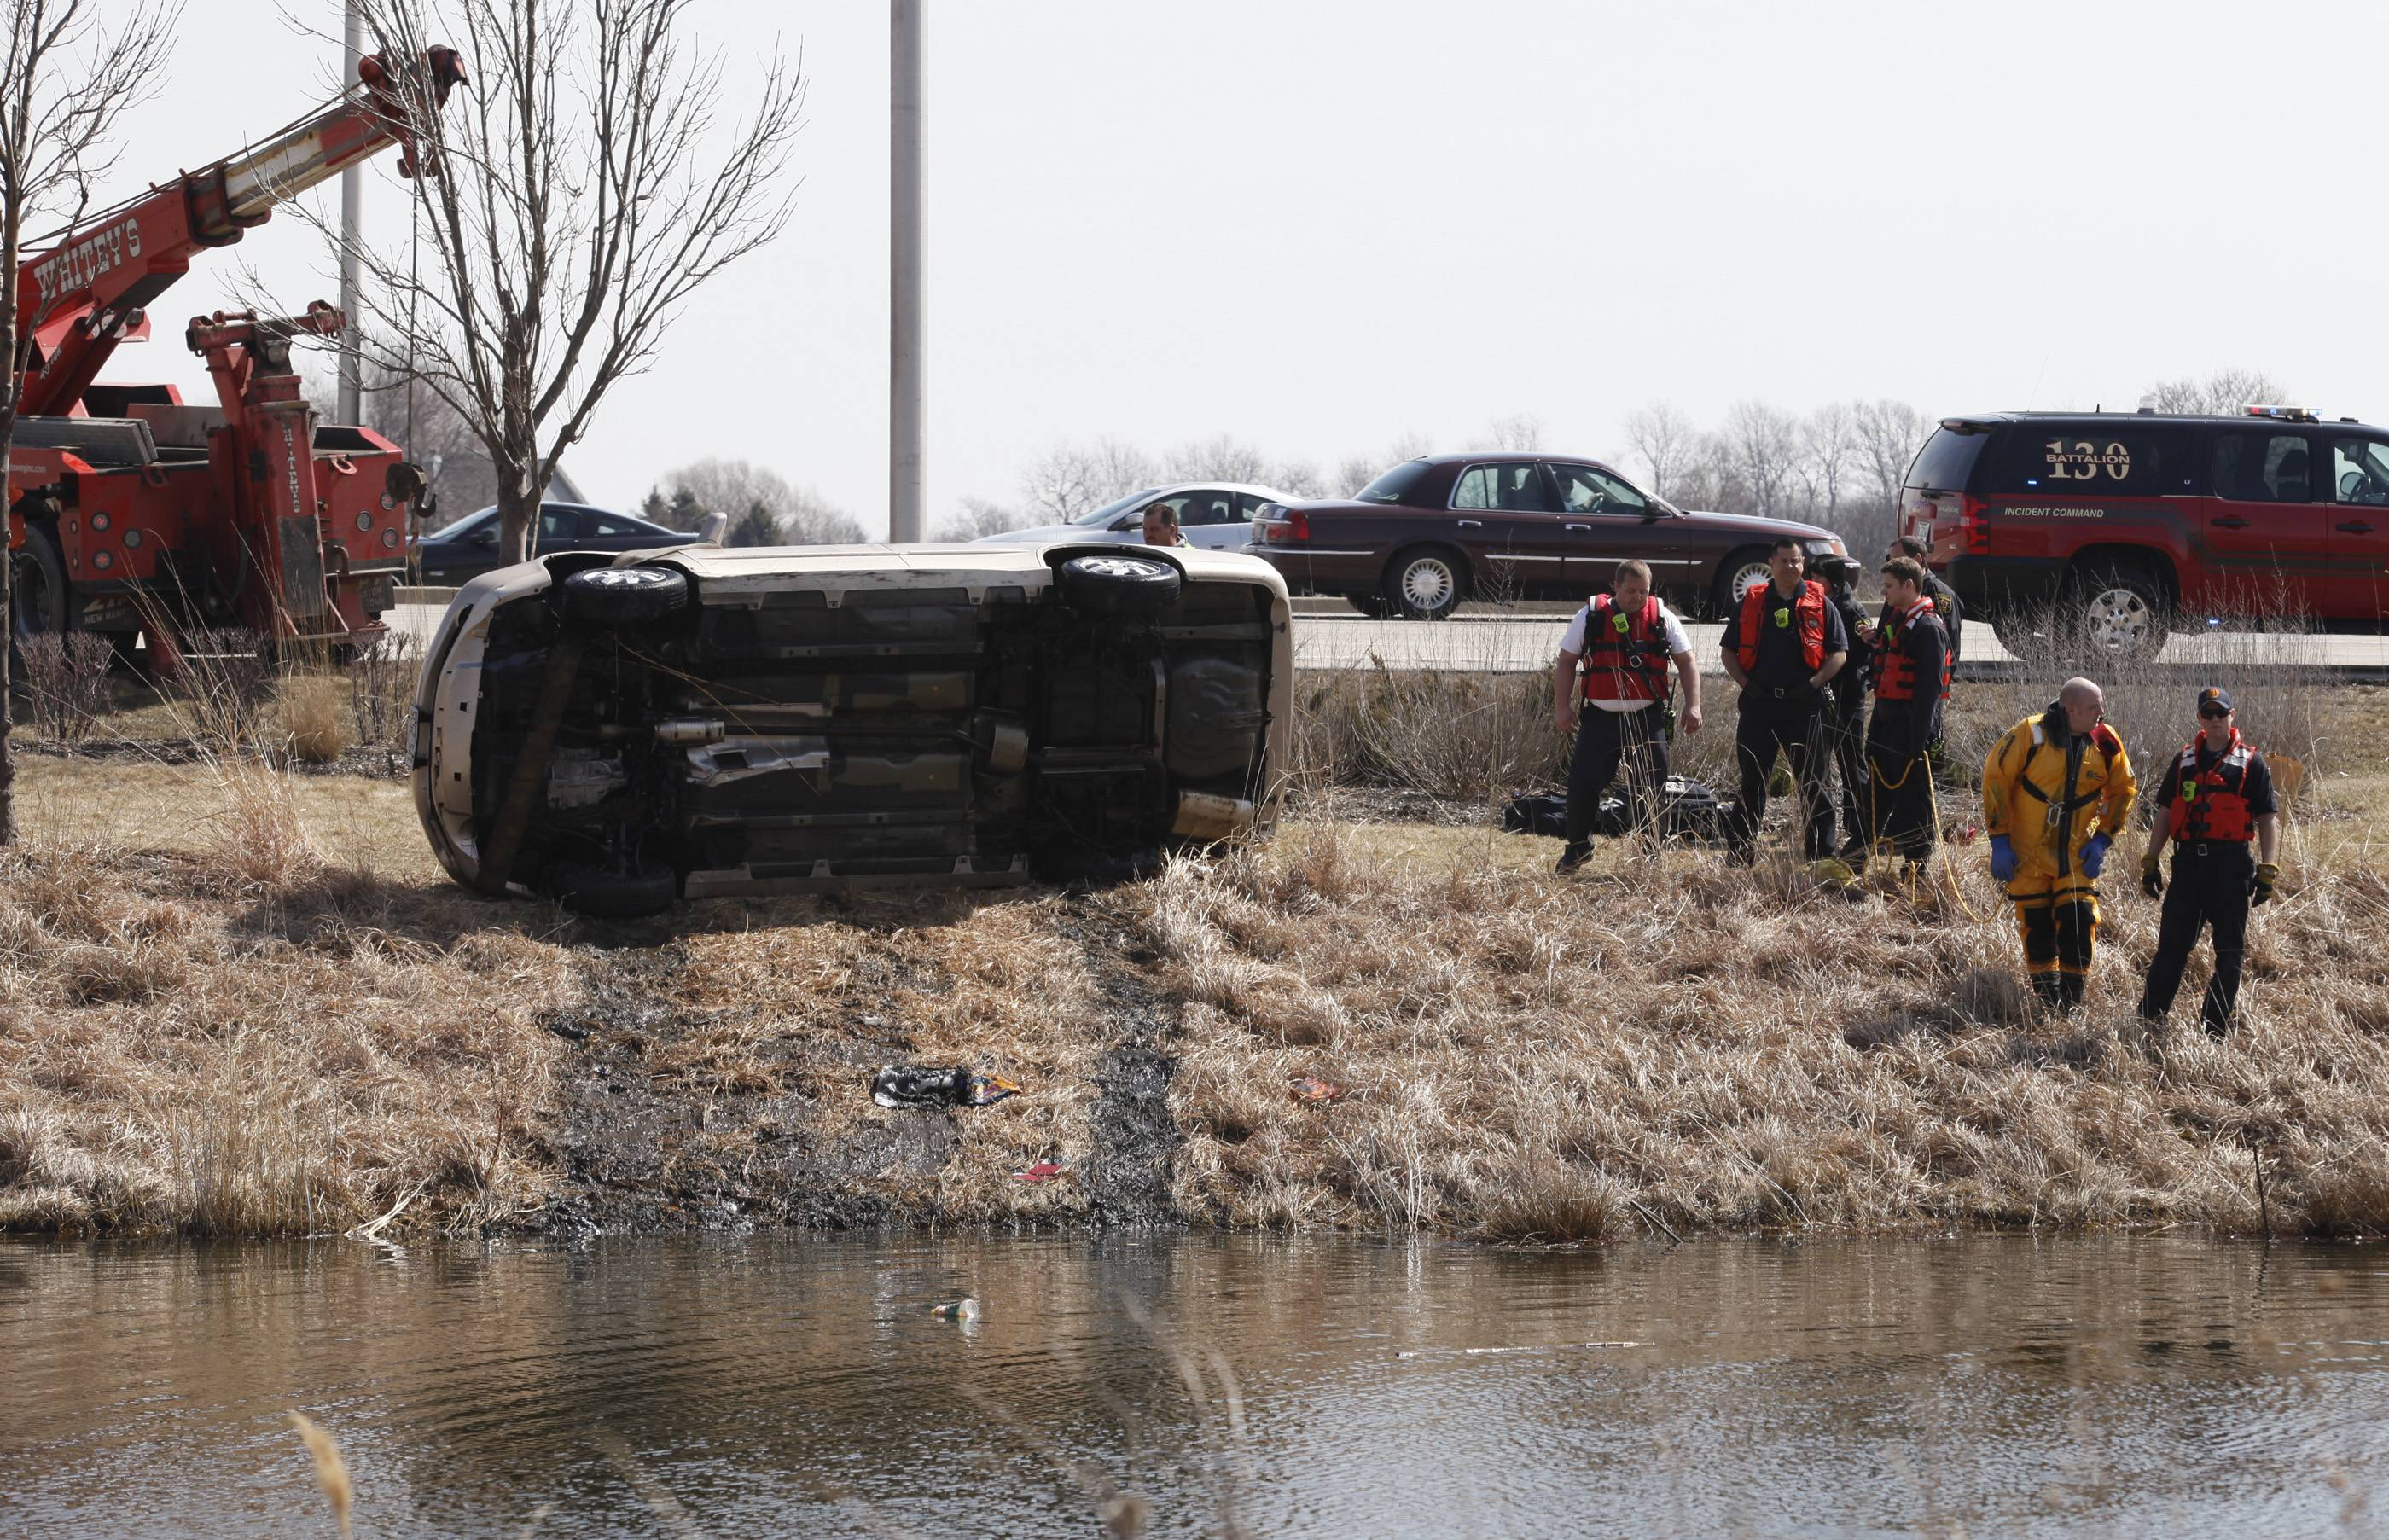 The car which crashed into a pond near Algonquin Commons is pulled from the water Wednesday afternoon after first responders smashed the vehicle's sunroof and pulled Paul Mellor, 57, of Algonquin, from the sinking car. Mellor was unconscious and not breathing when he was pulled from the car, officials said.